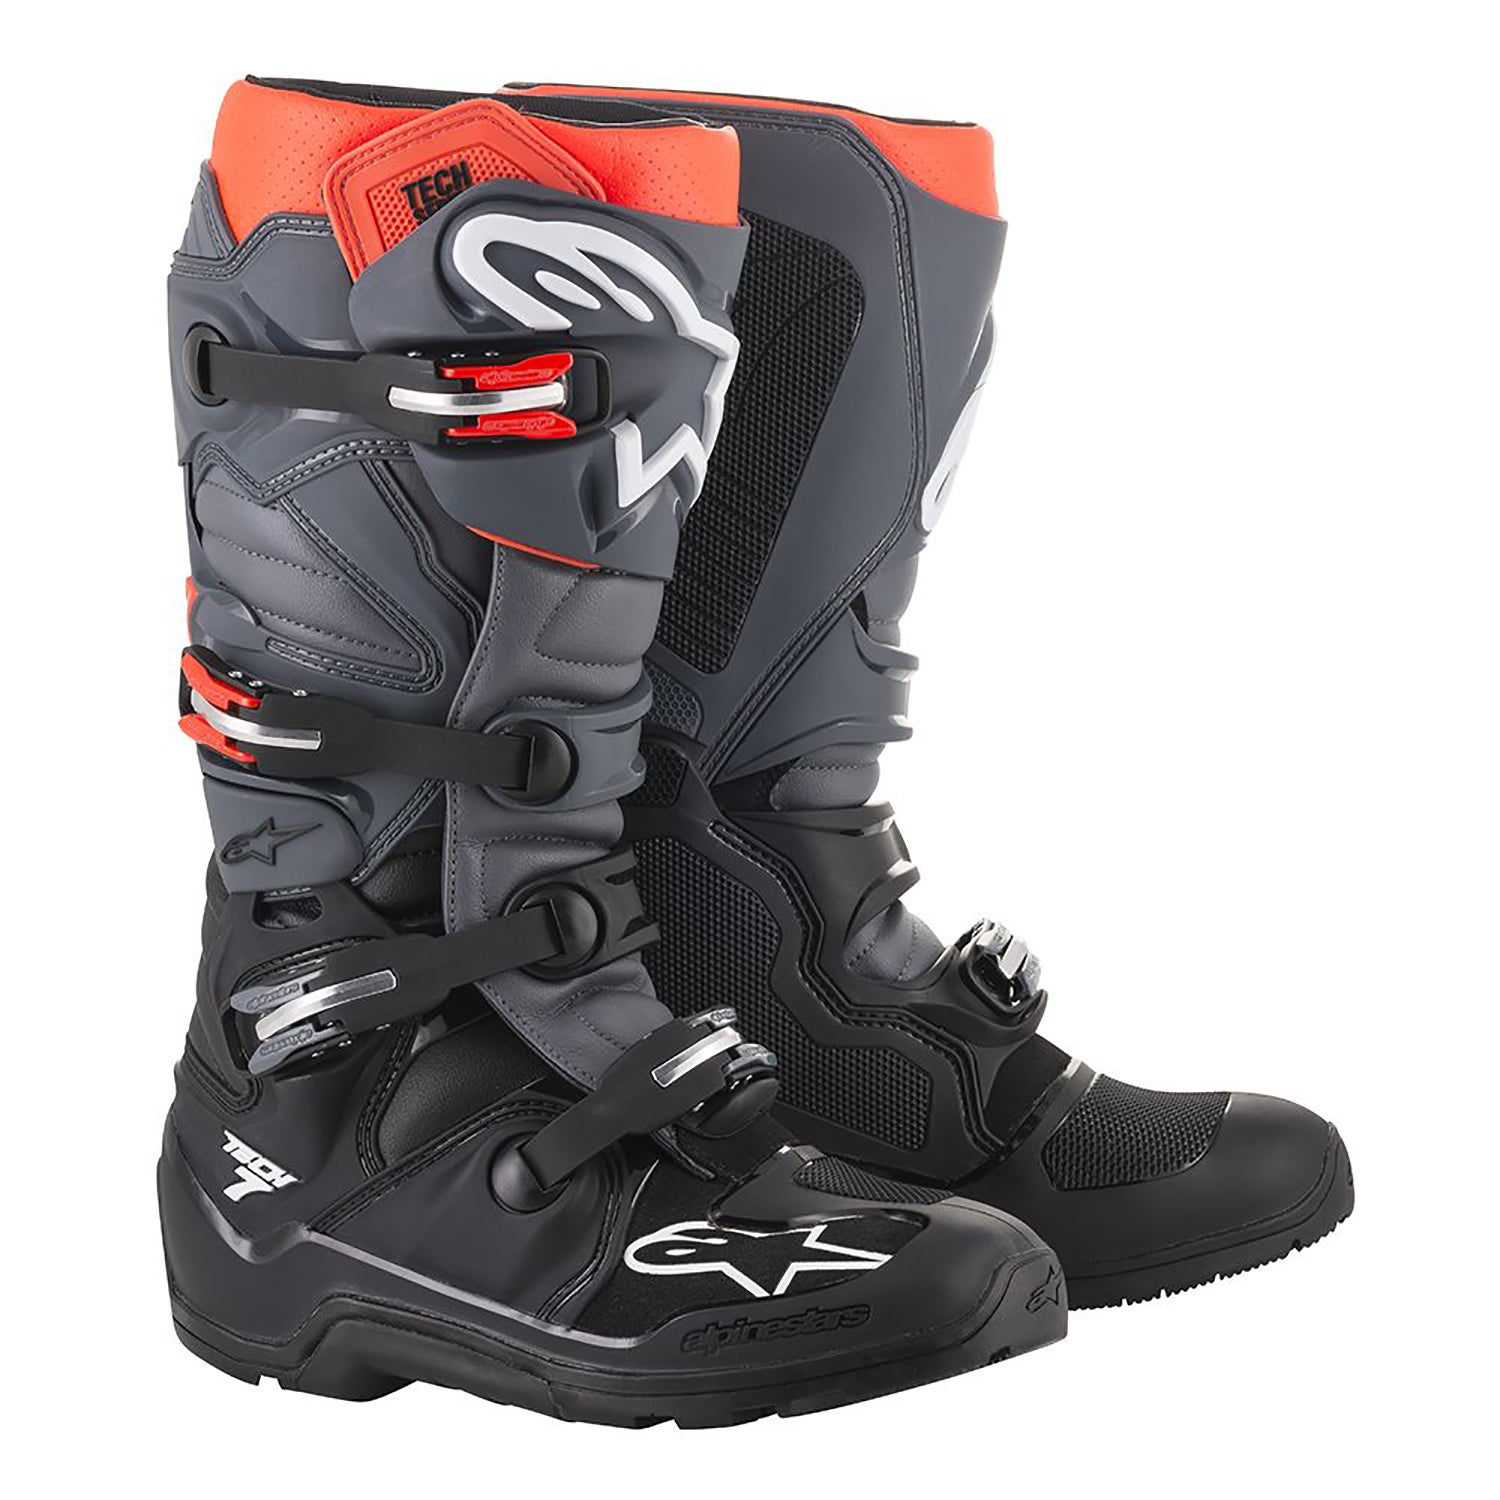 Details about Alpinestars Tech 7 Enduro Grippy Sole Mens Boots Moto Black Gray Red Fluo